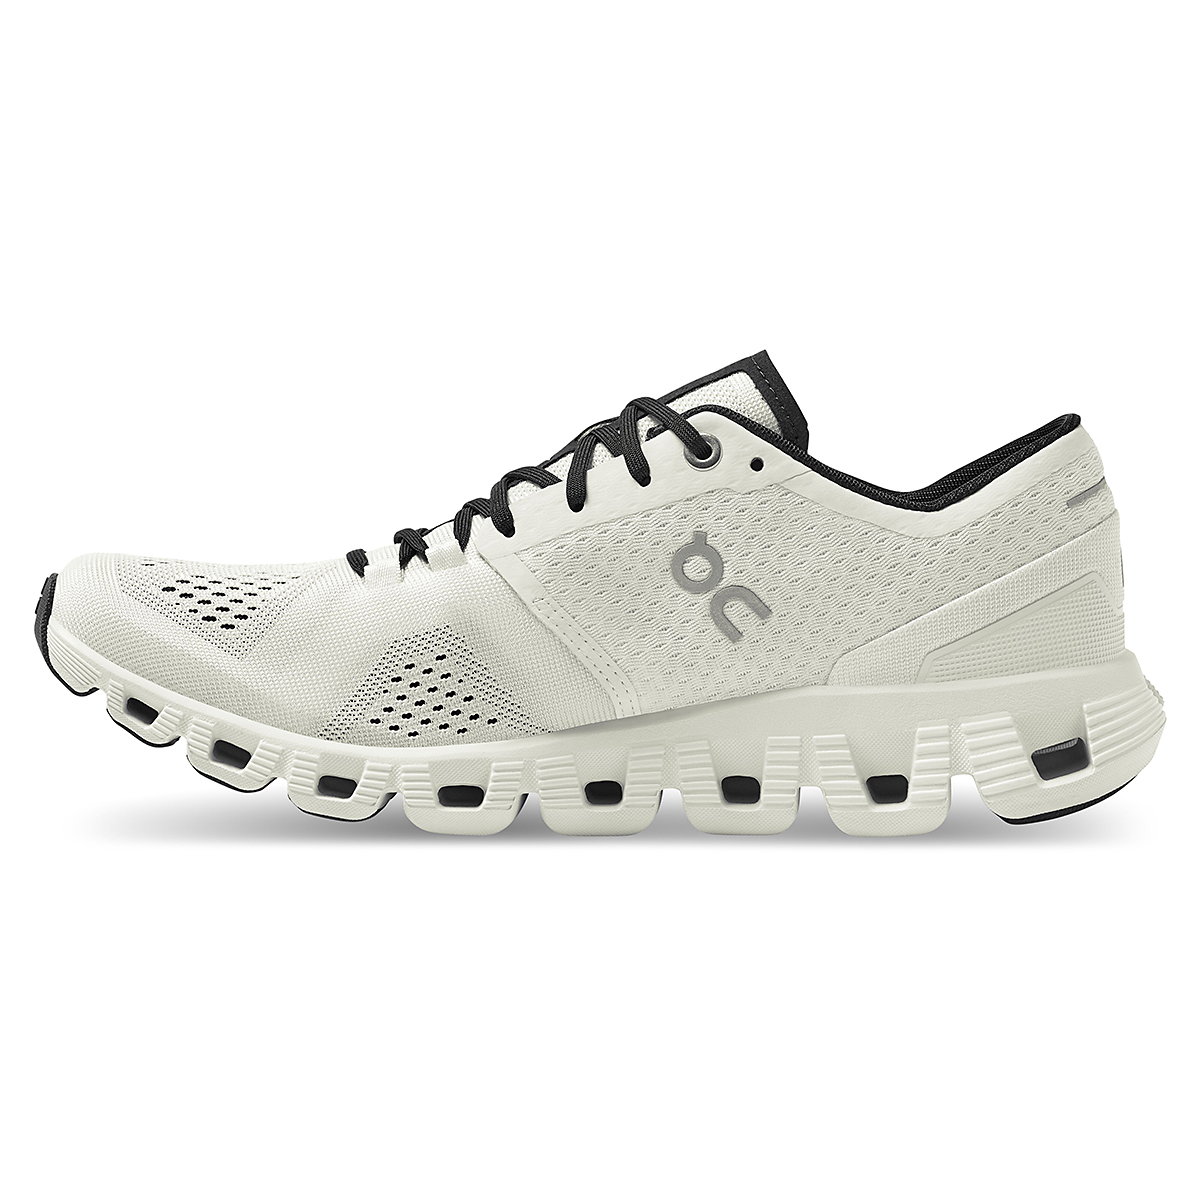 Women's On Cloud X 2.0 Running Shoe - Color: White/Black - Size: 5 - Width: Regular, White/Black, large, image 2